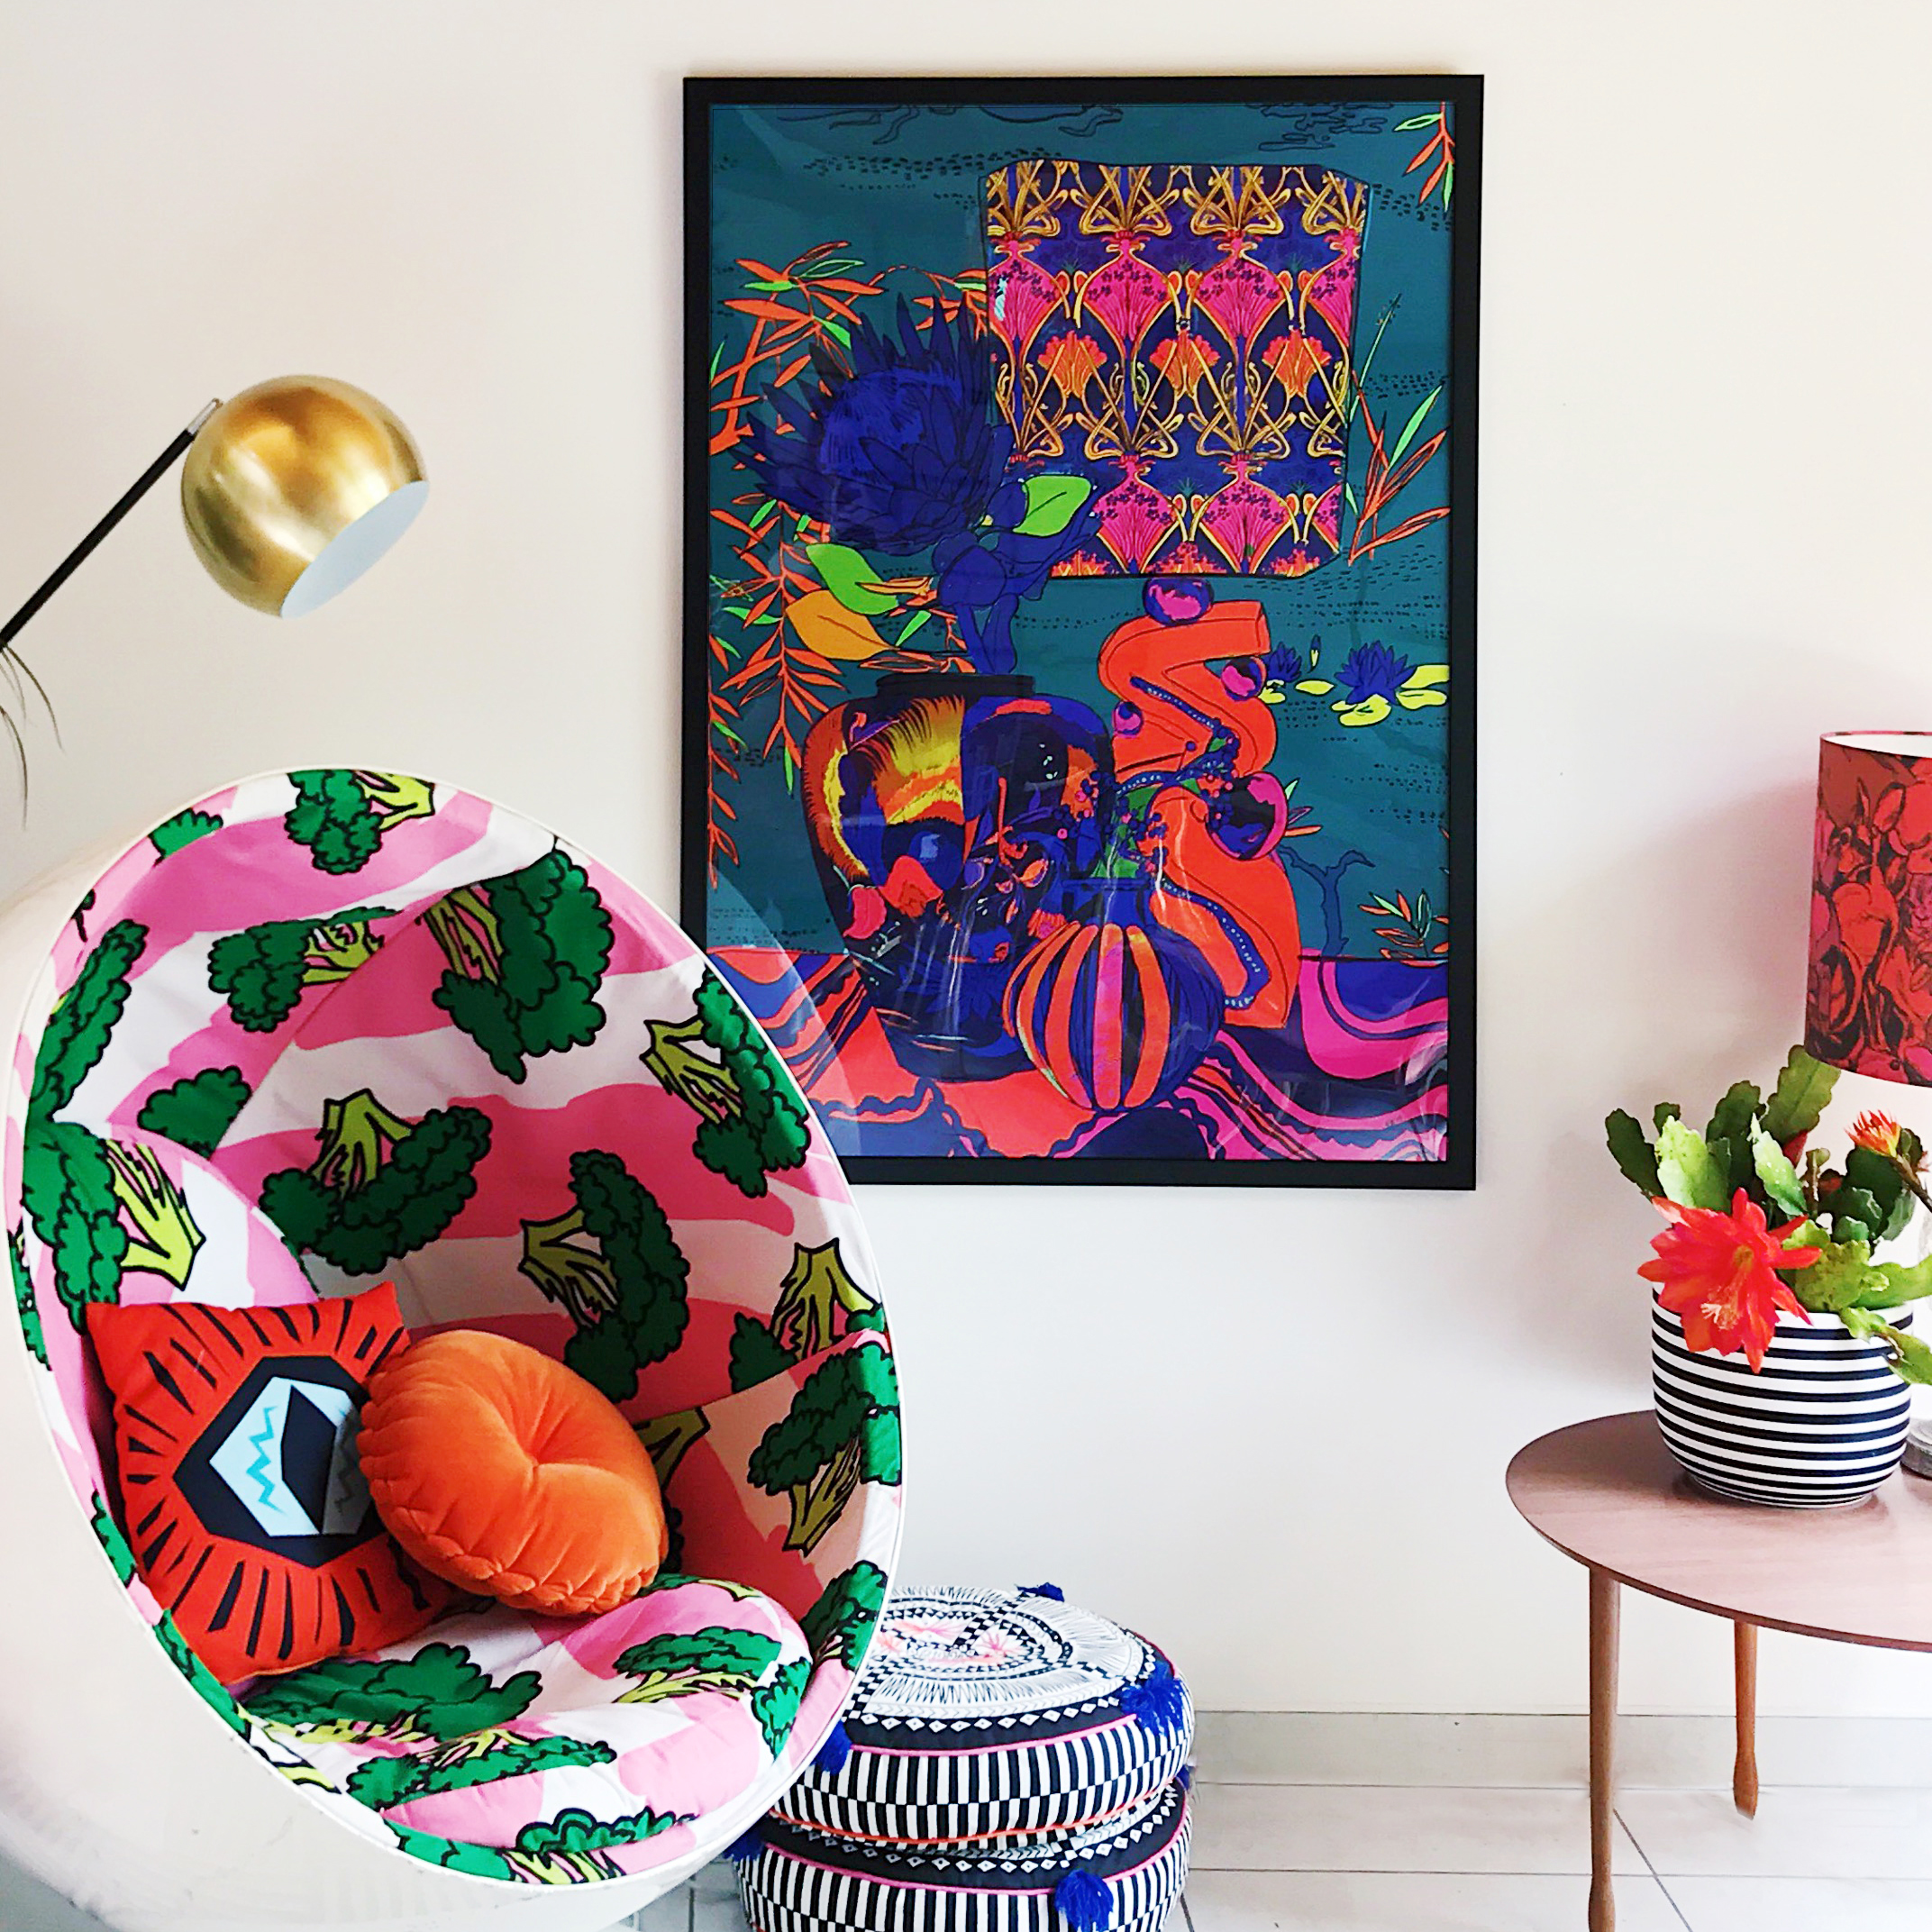 Limited Edition Print Release  A limited edition release of large scale, fine art prints is available via the studio shop, as seen in the award winning Naumi Hotel.